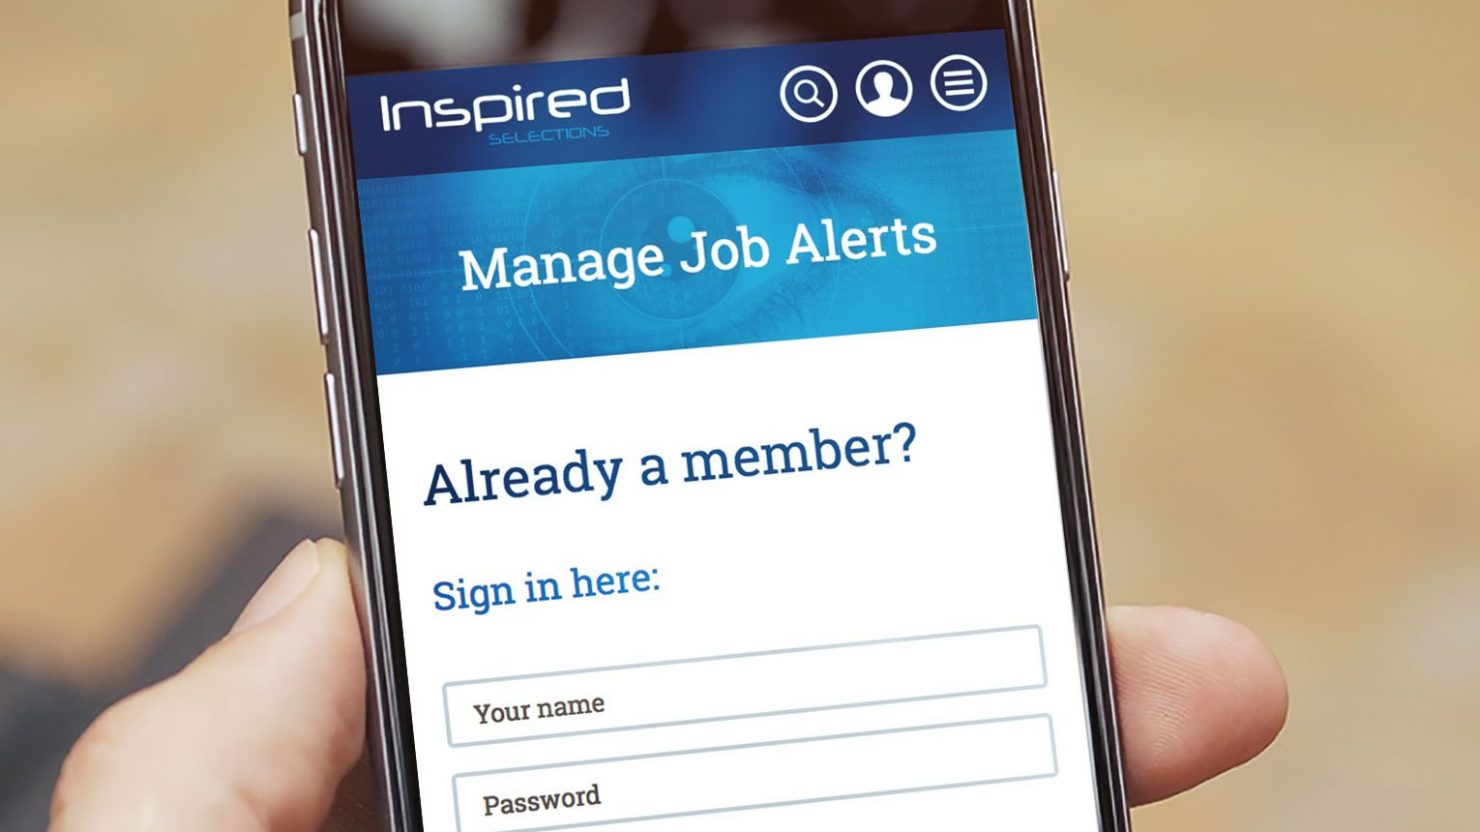 responsive job board website design for inspired selections birmingham shown on iphone